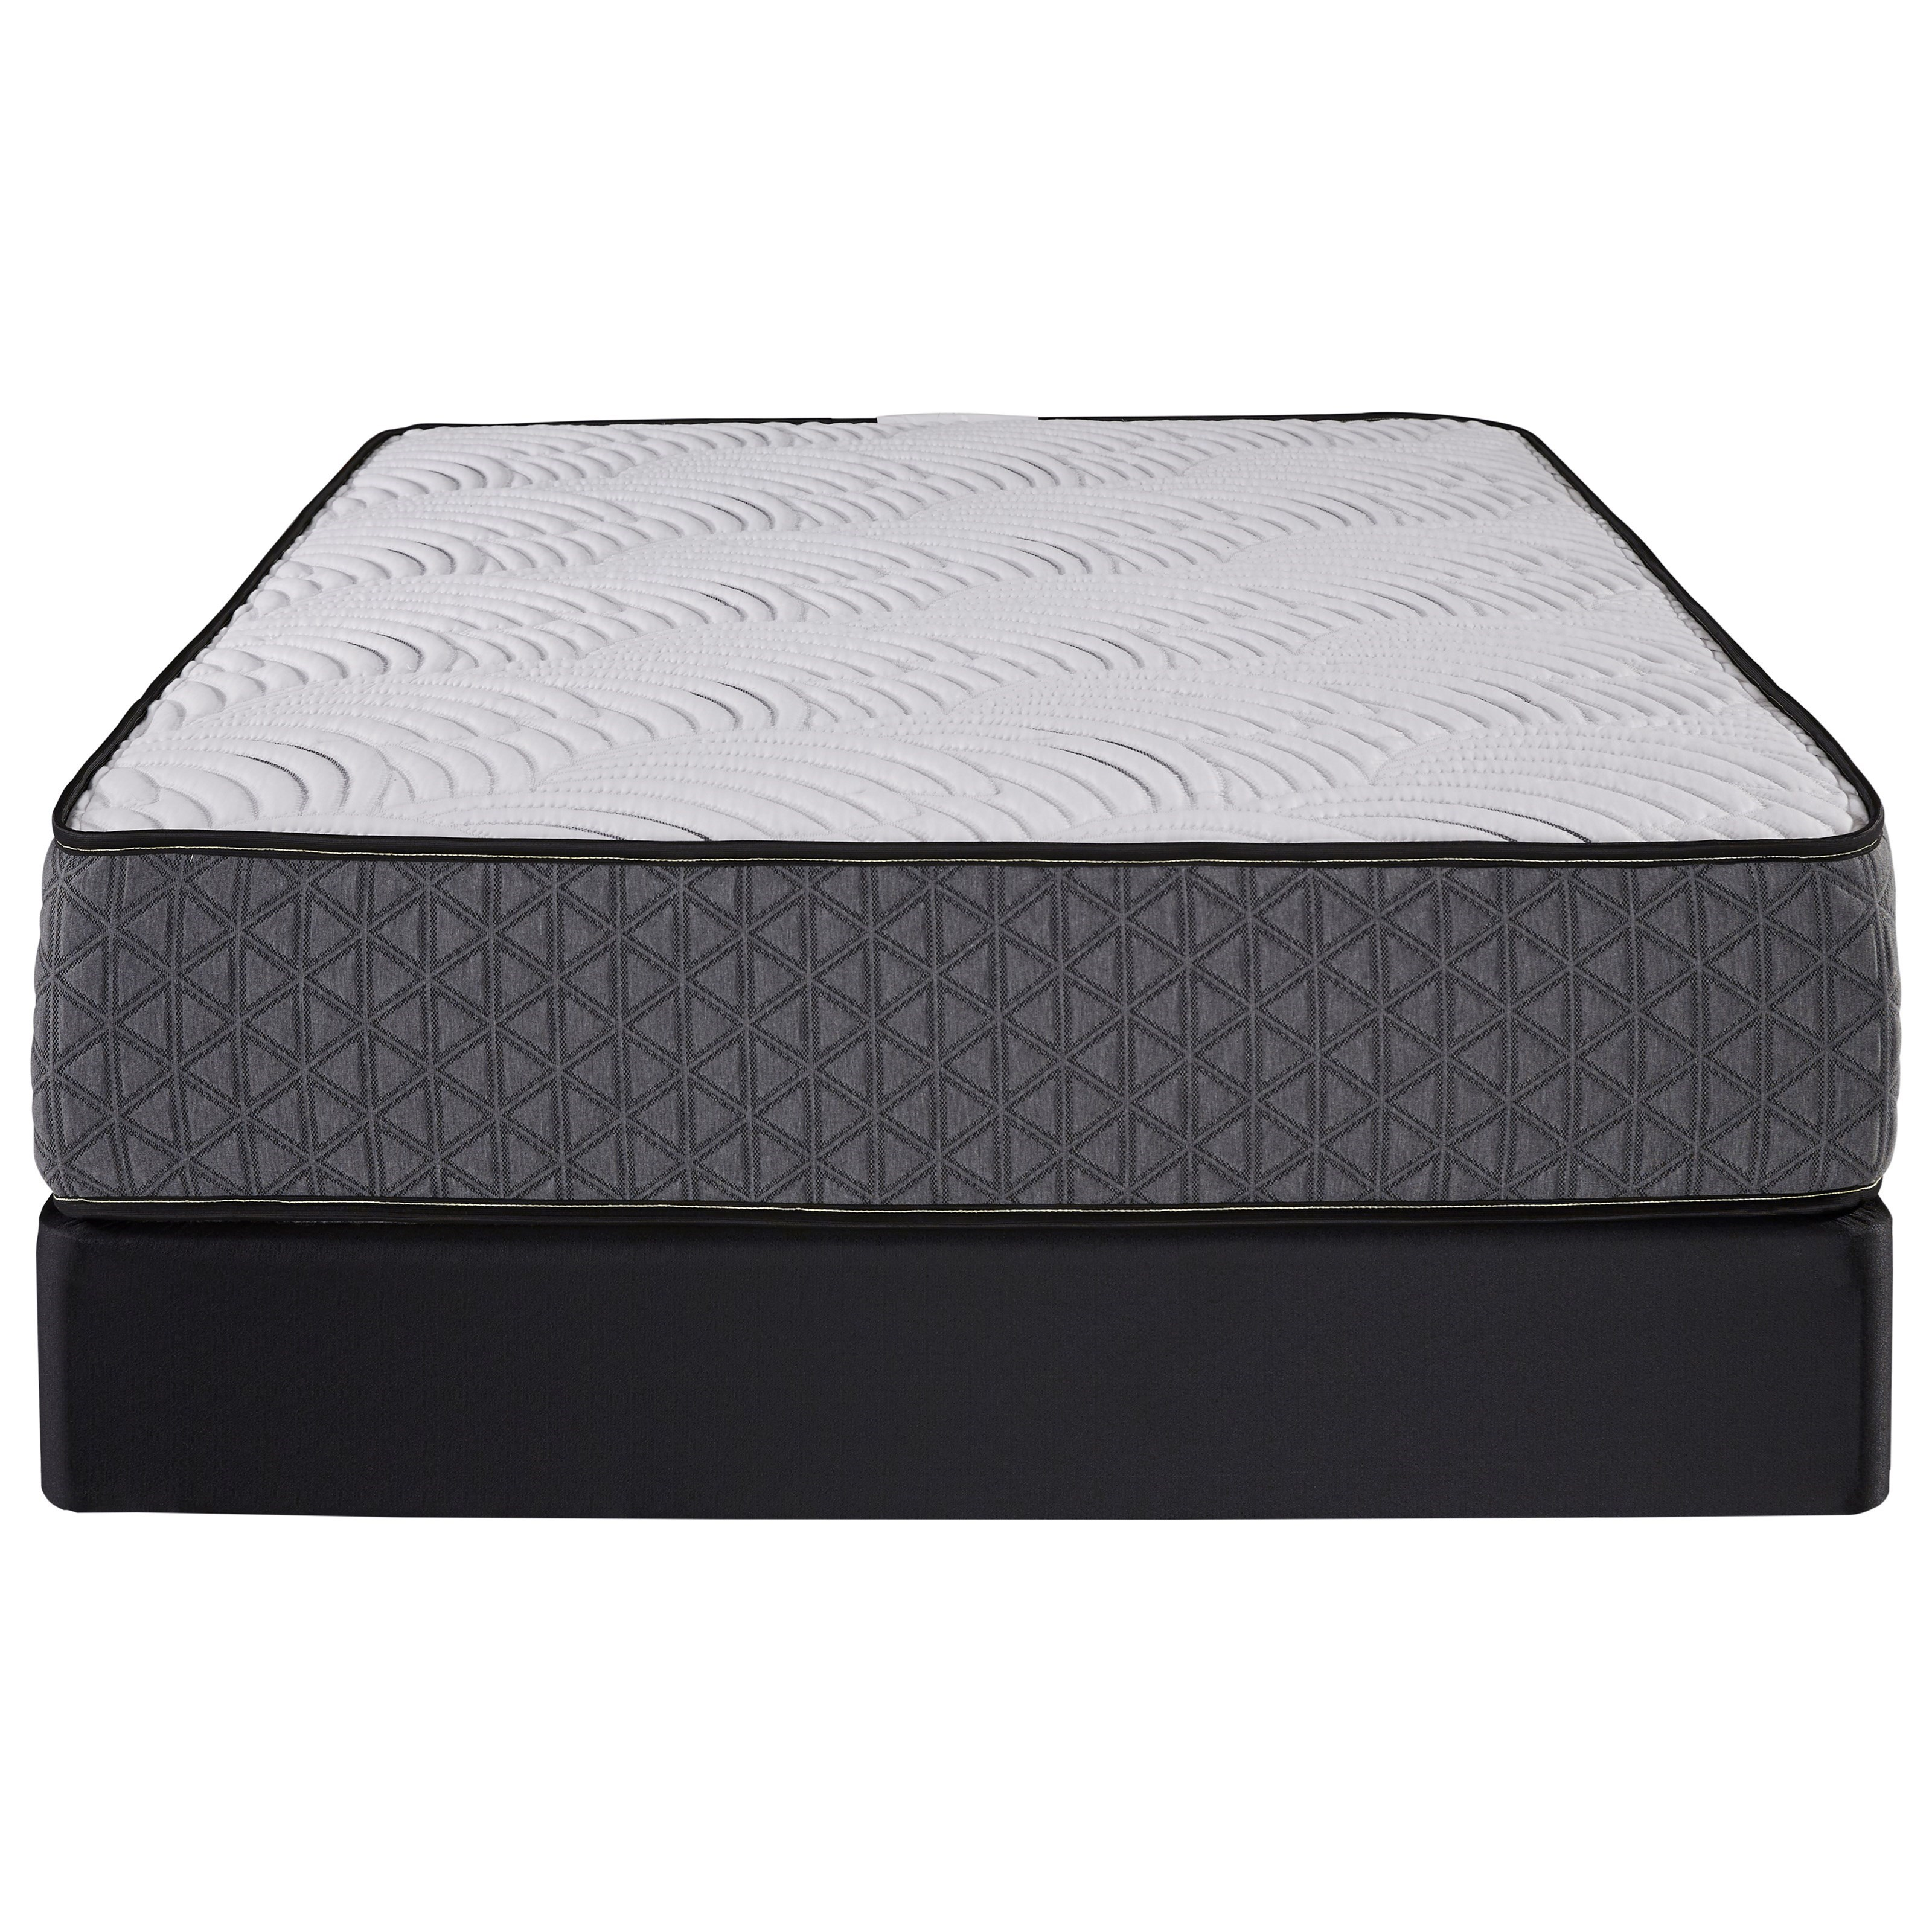 Cordova Firm Twin Pocketed Coil Mattress Set  by Restonic at H.L. Stephens